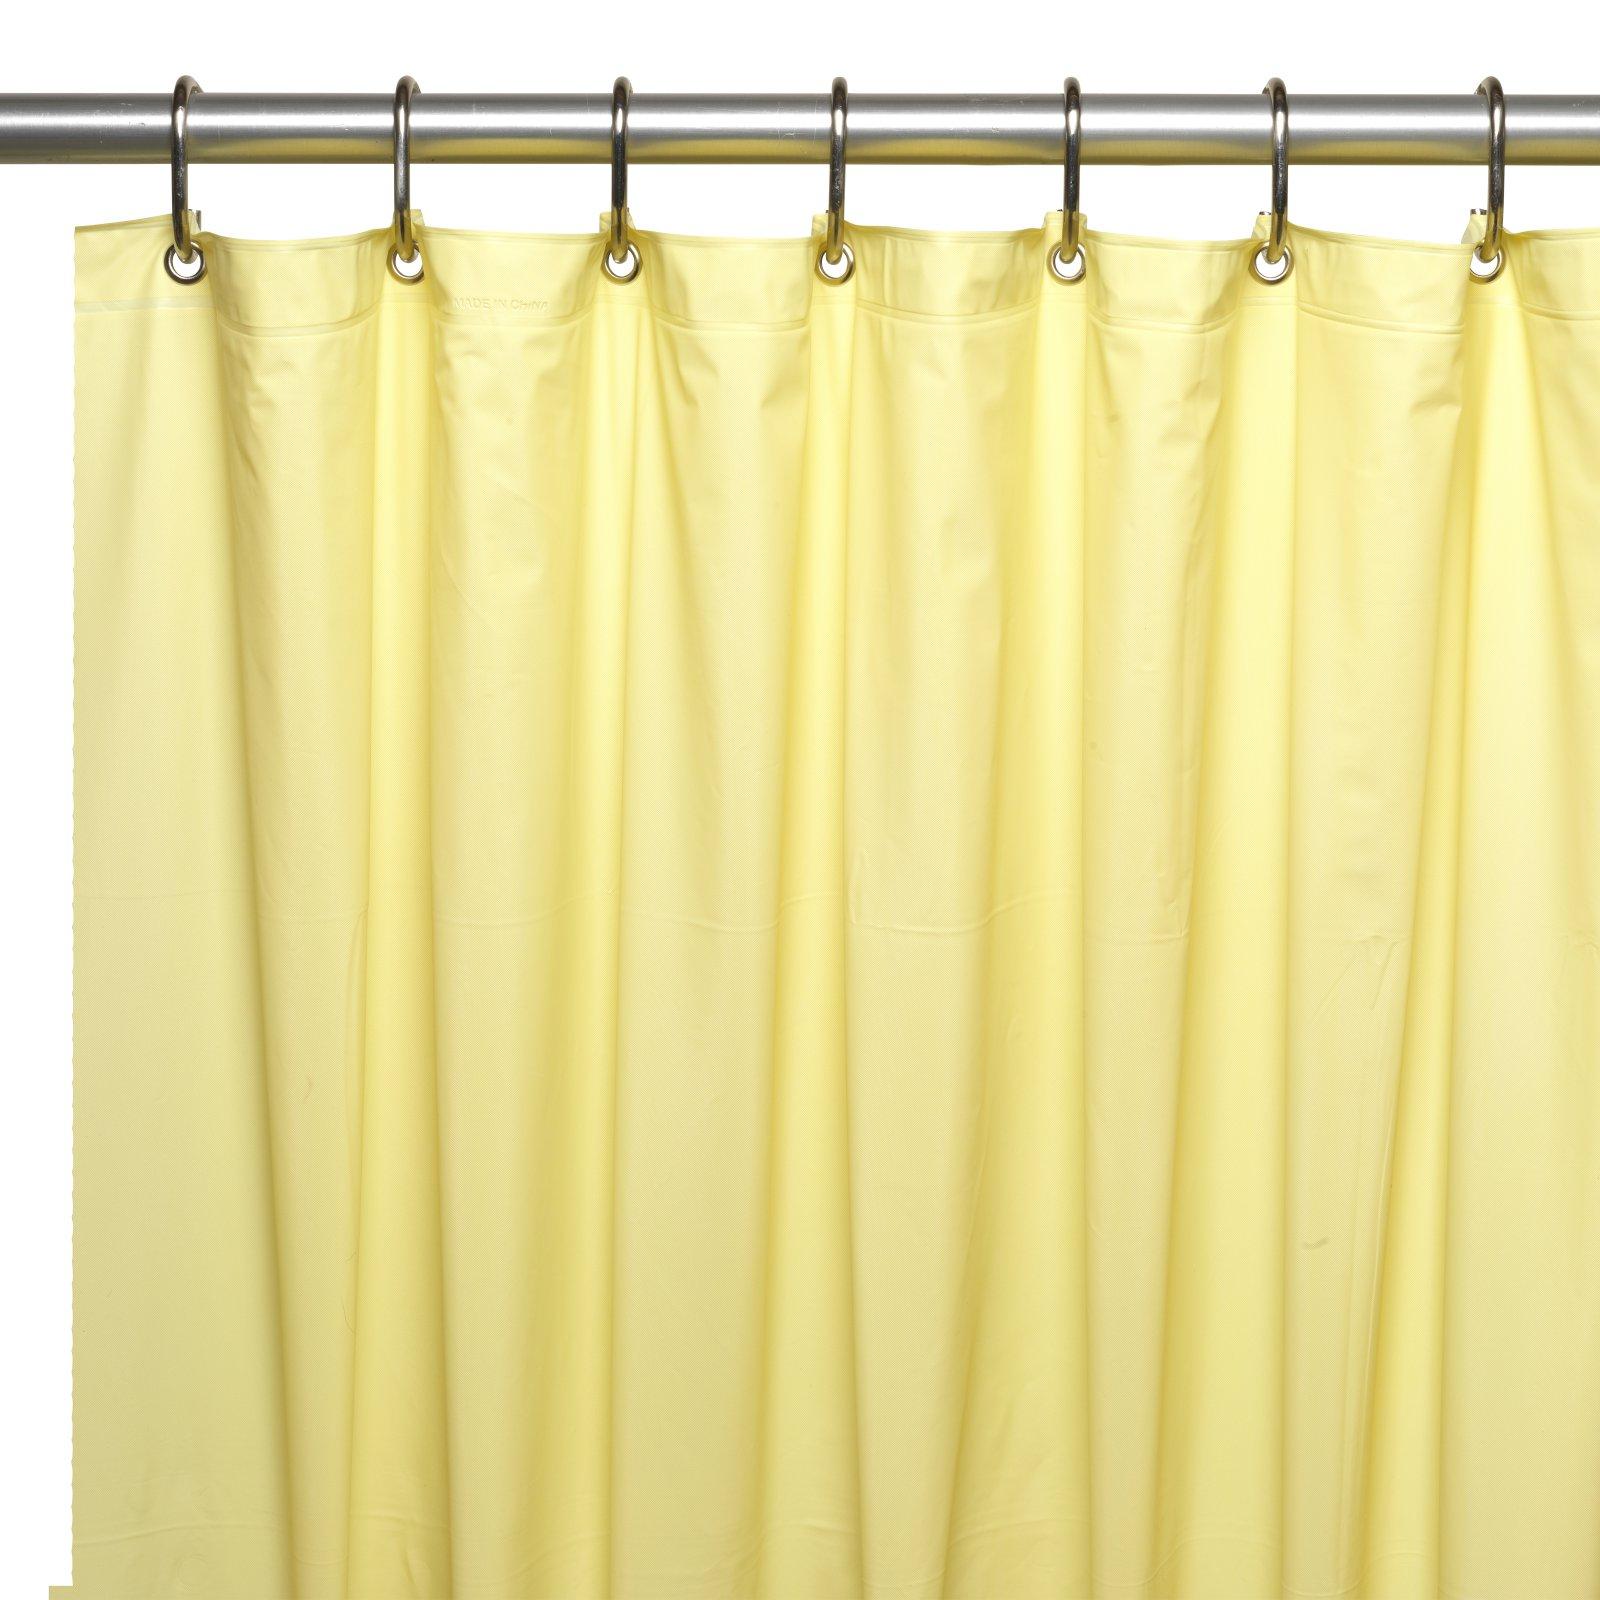 Hotel Collection, 8 Gauge Vinyl Shower Curtain Liner w/ Metal Grommets in Yellow